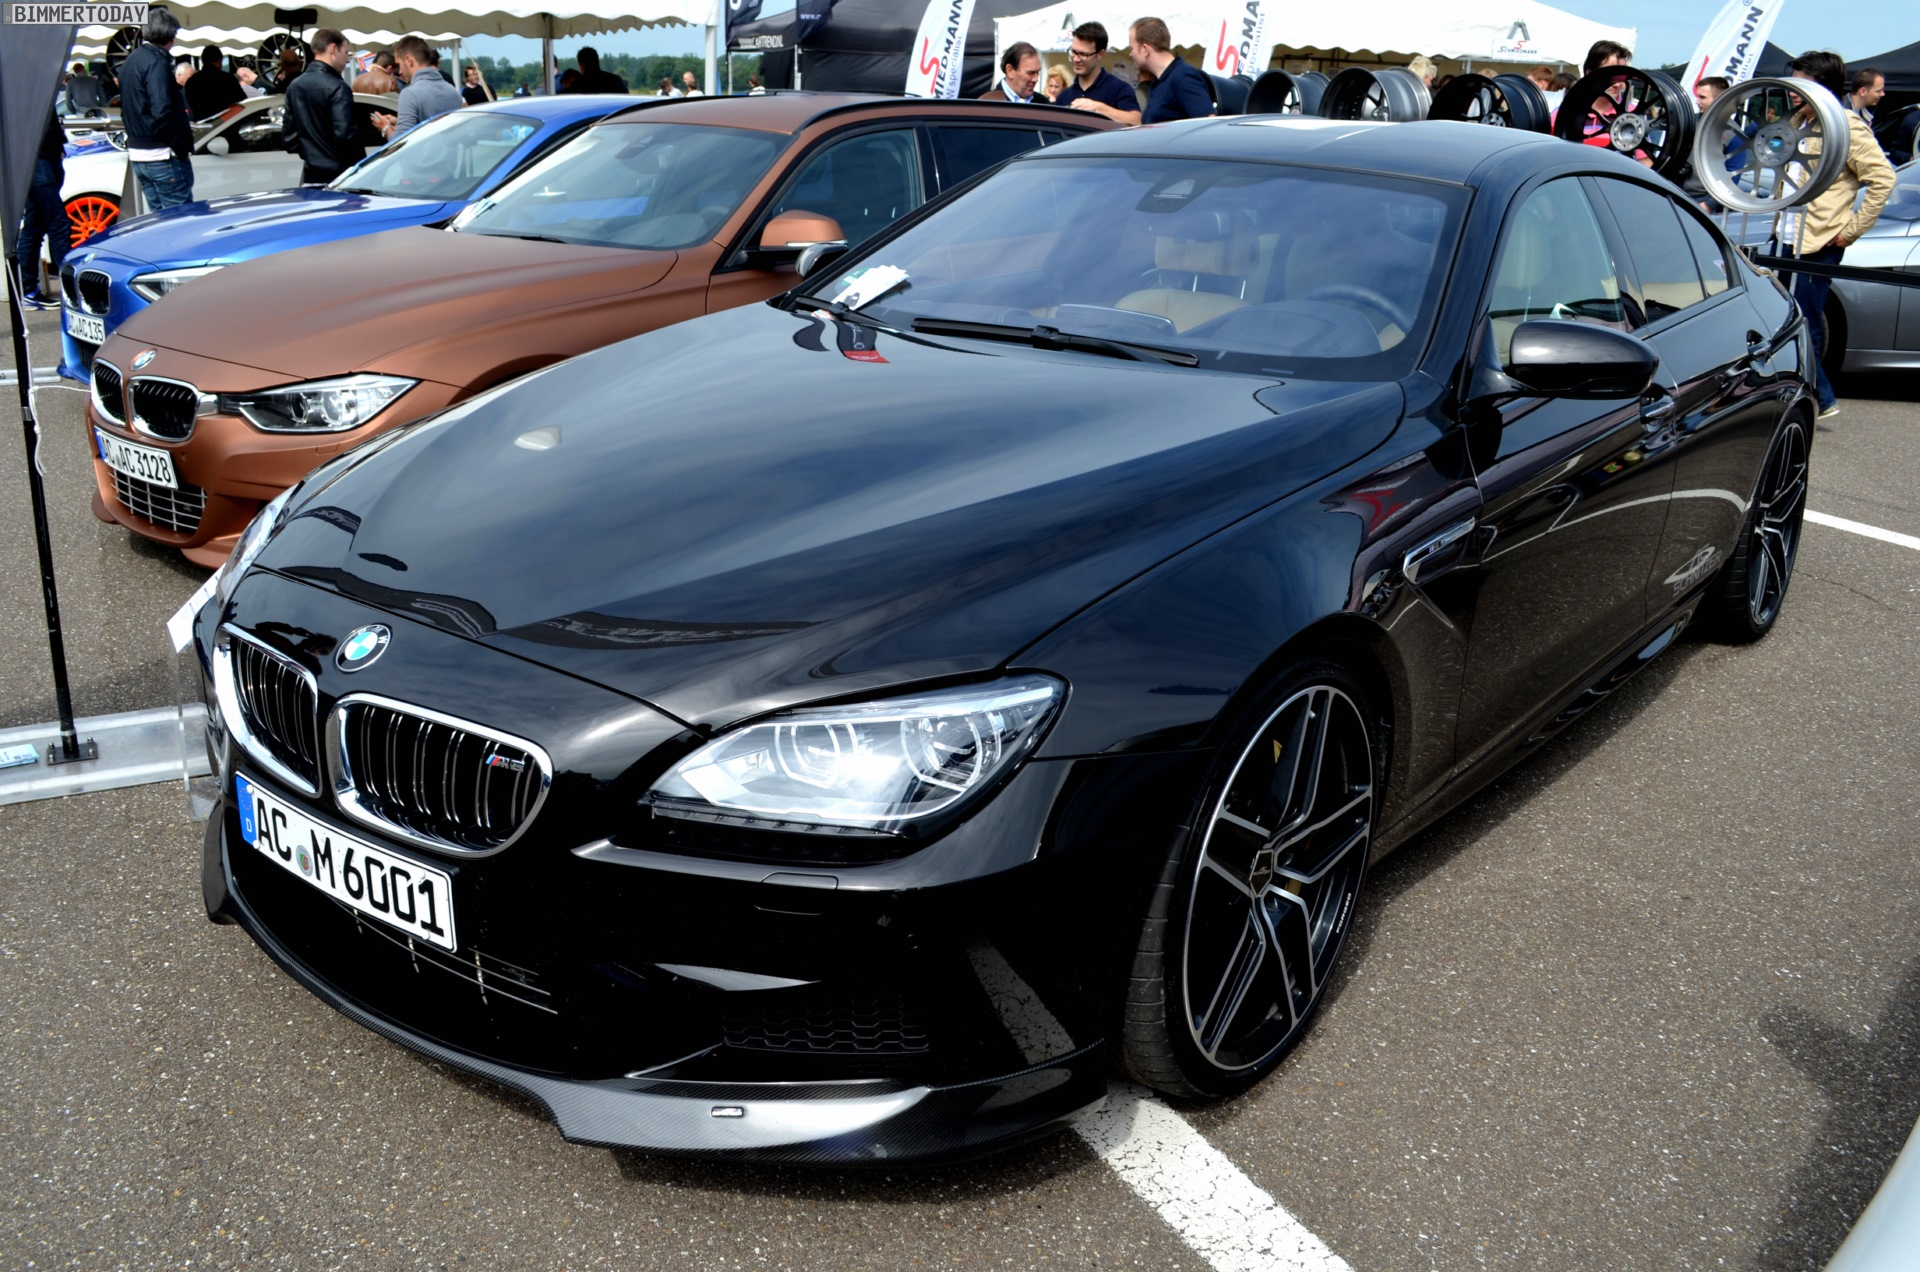 ac schnitzer tunes bmw m6 gran coupe. Black Bedroom Furniture Sets. Home Design Ideas